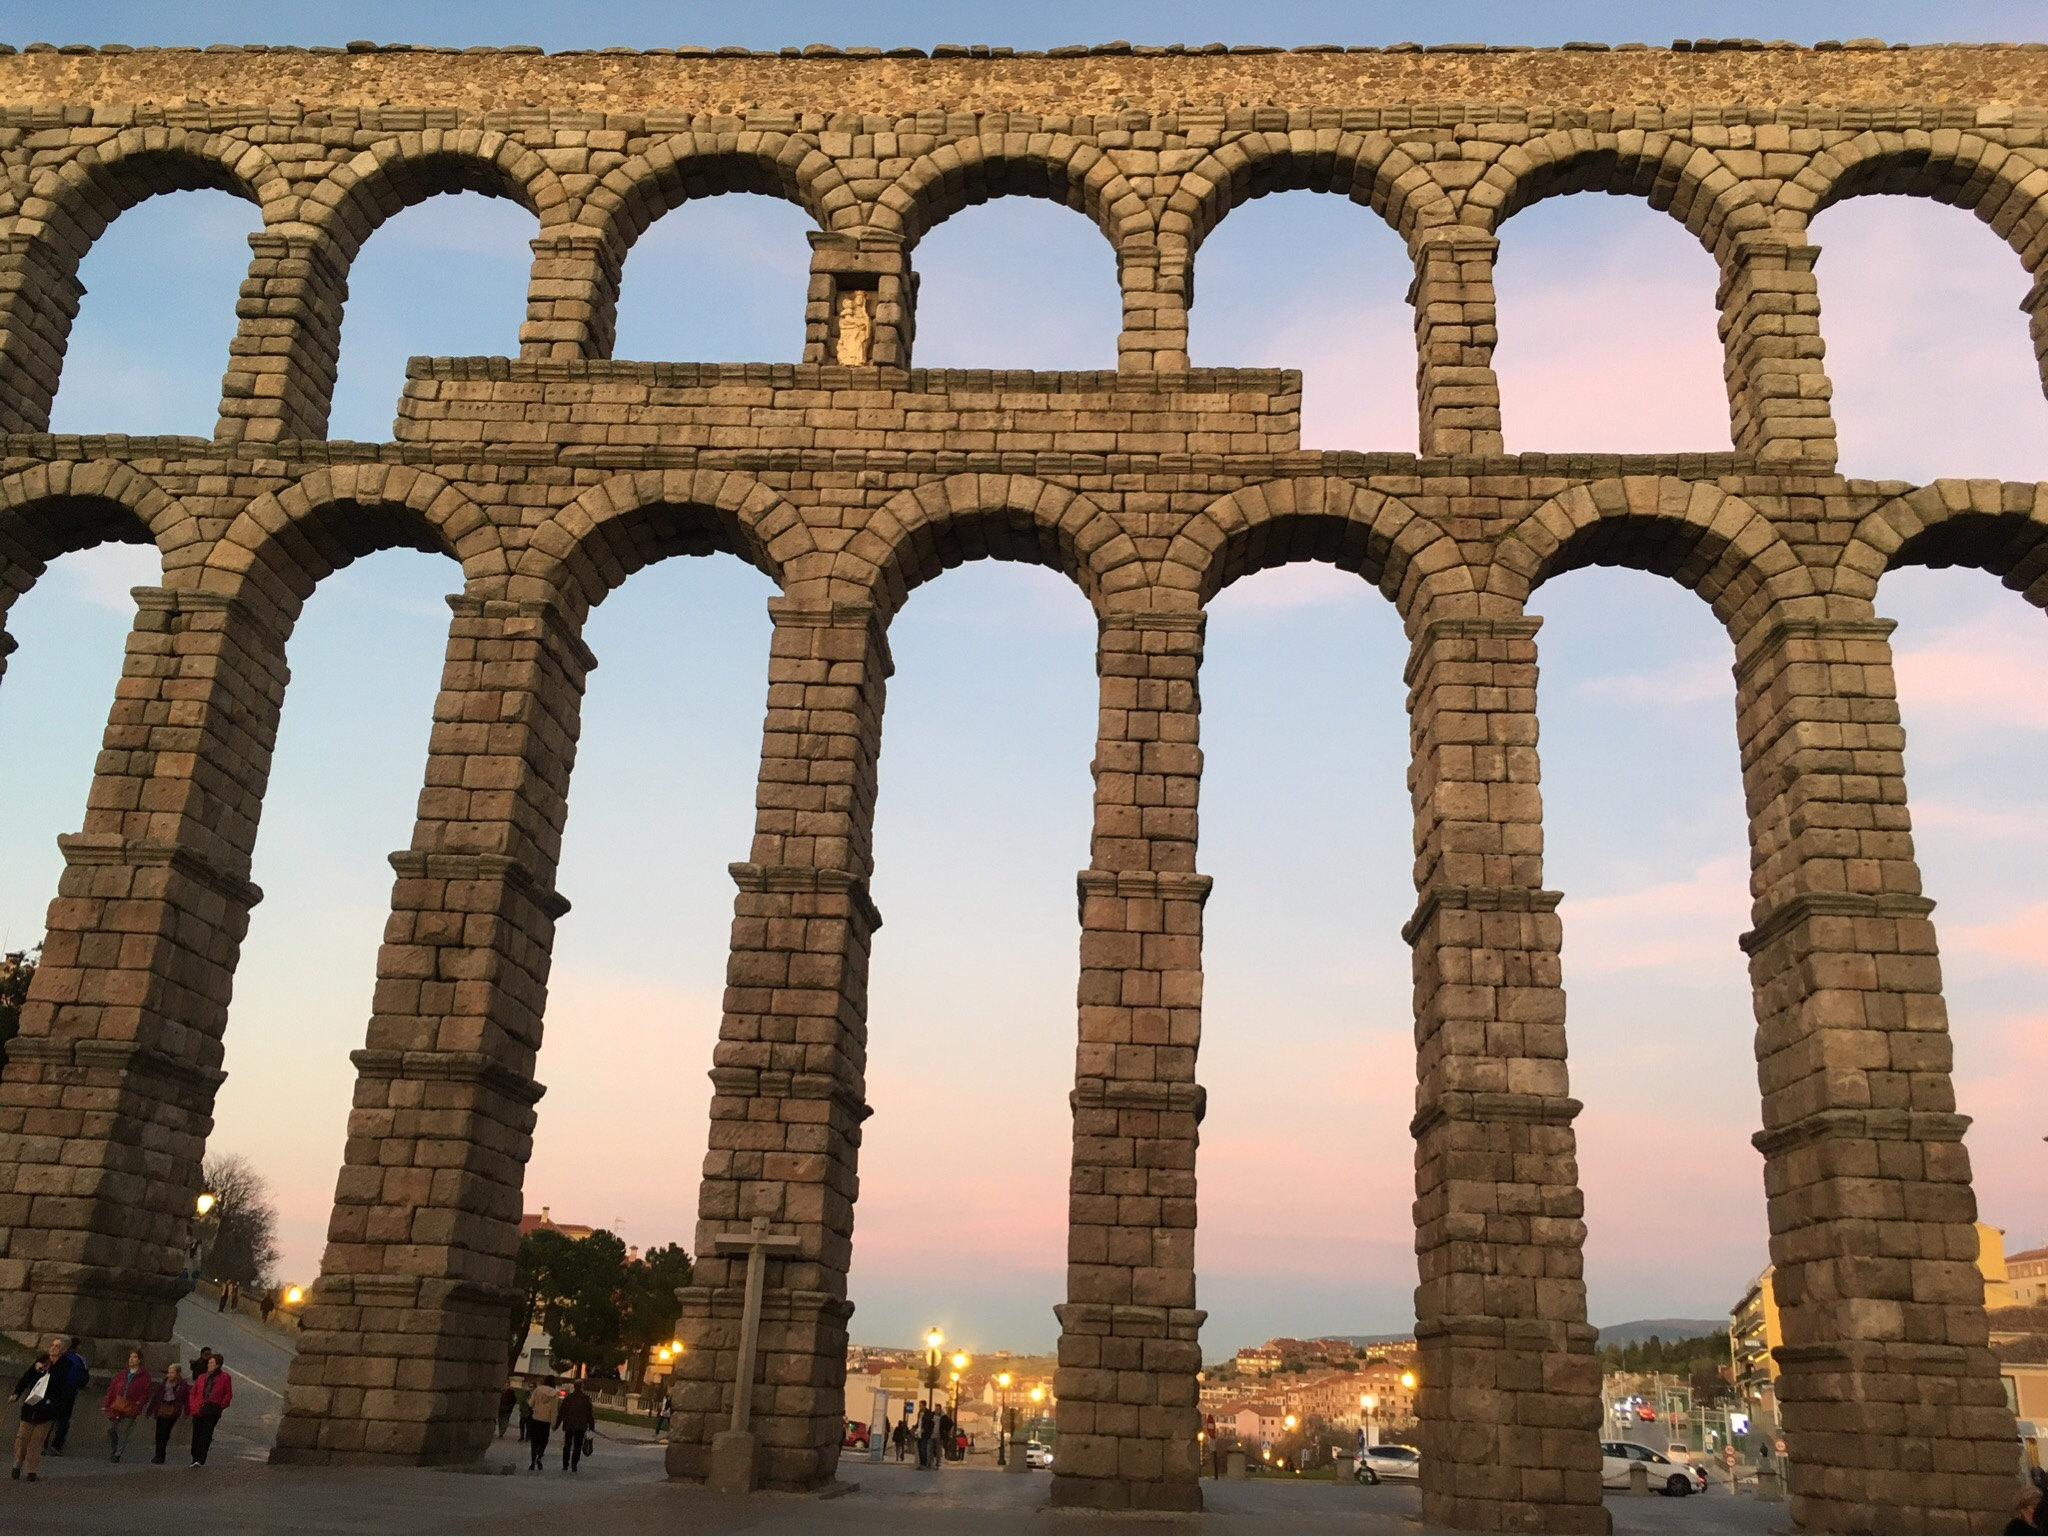 The aqueduct in Segovia At sunset